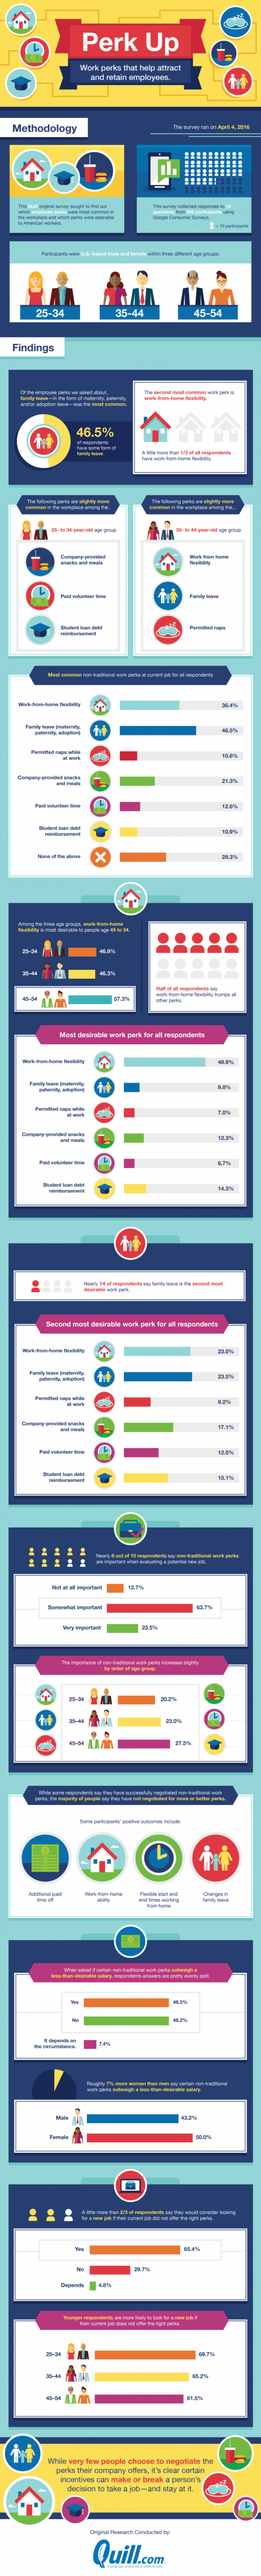 employee-perks-survey-infographic-720x7093